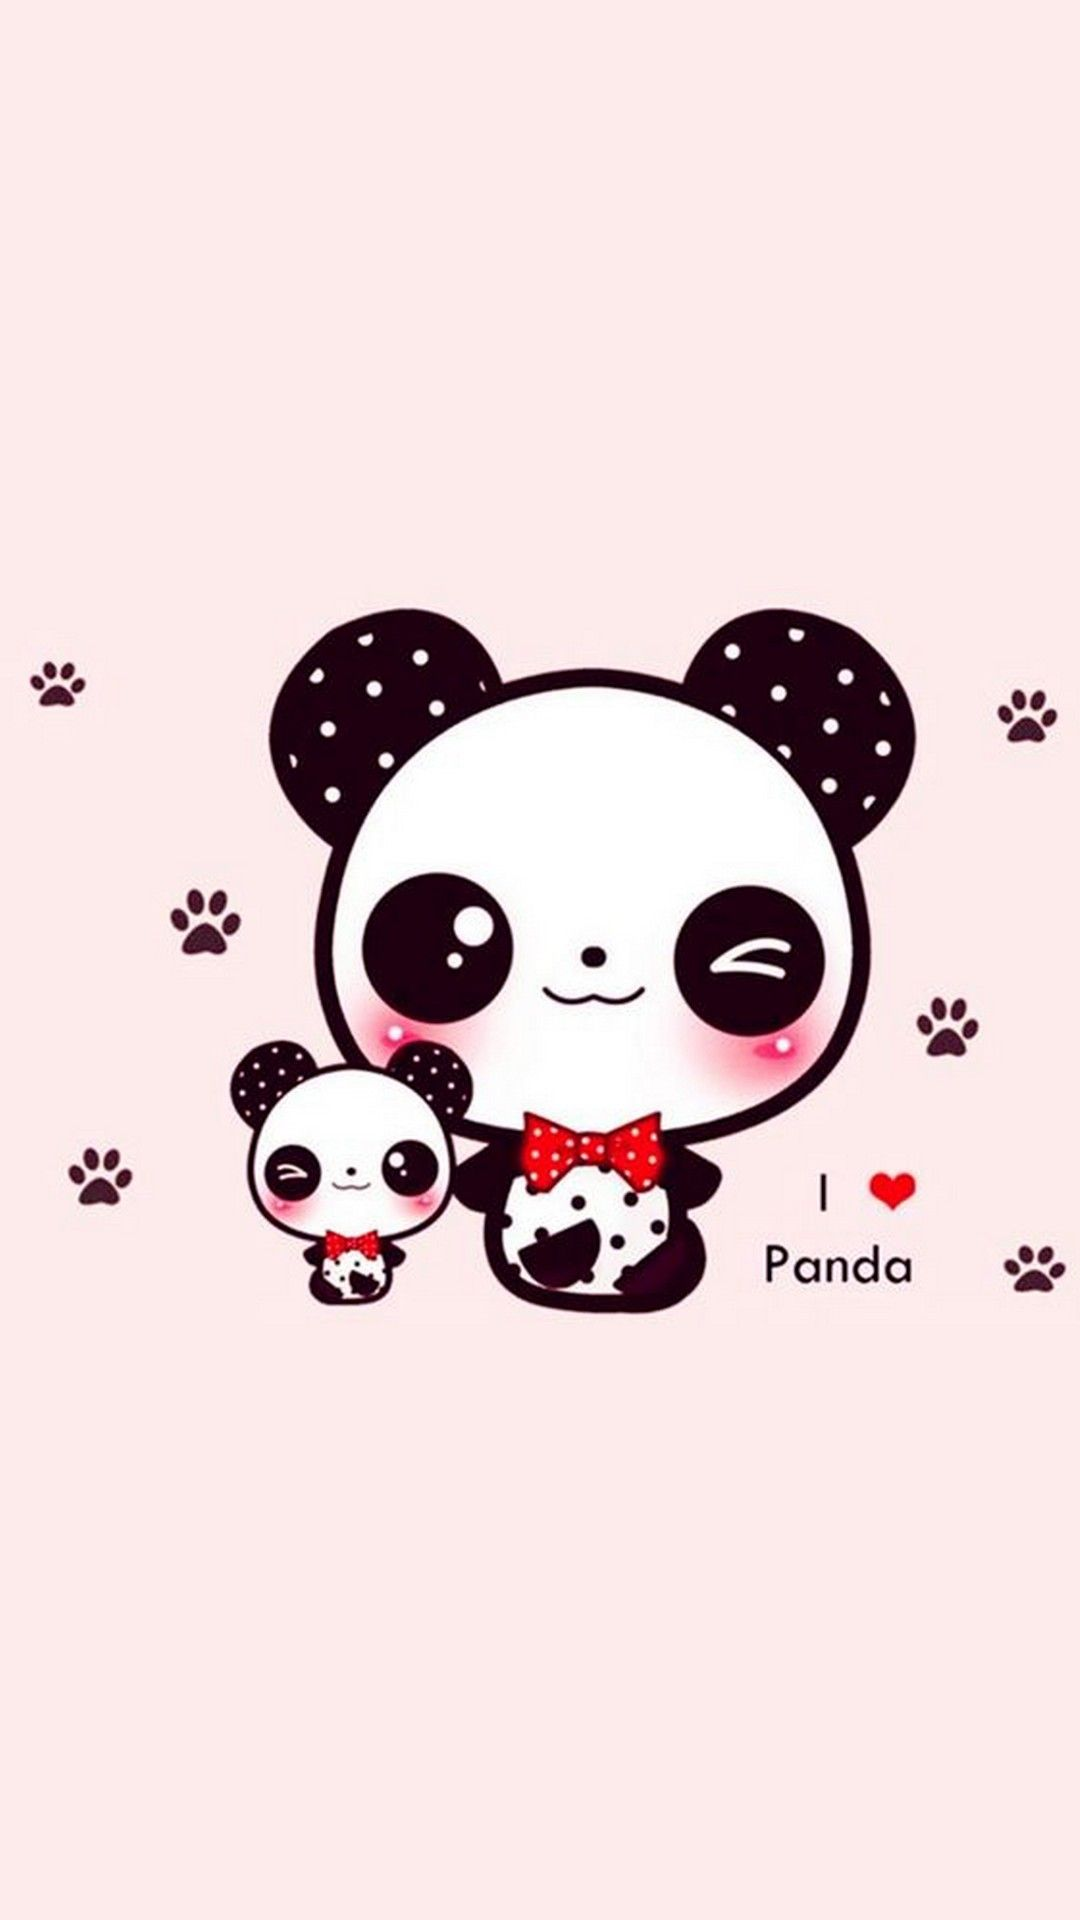 Buy Pandas cute wallpaper photo pictures trends